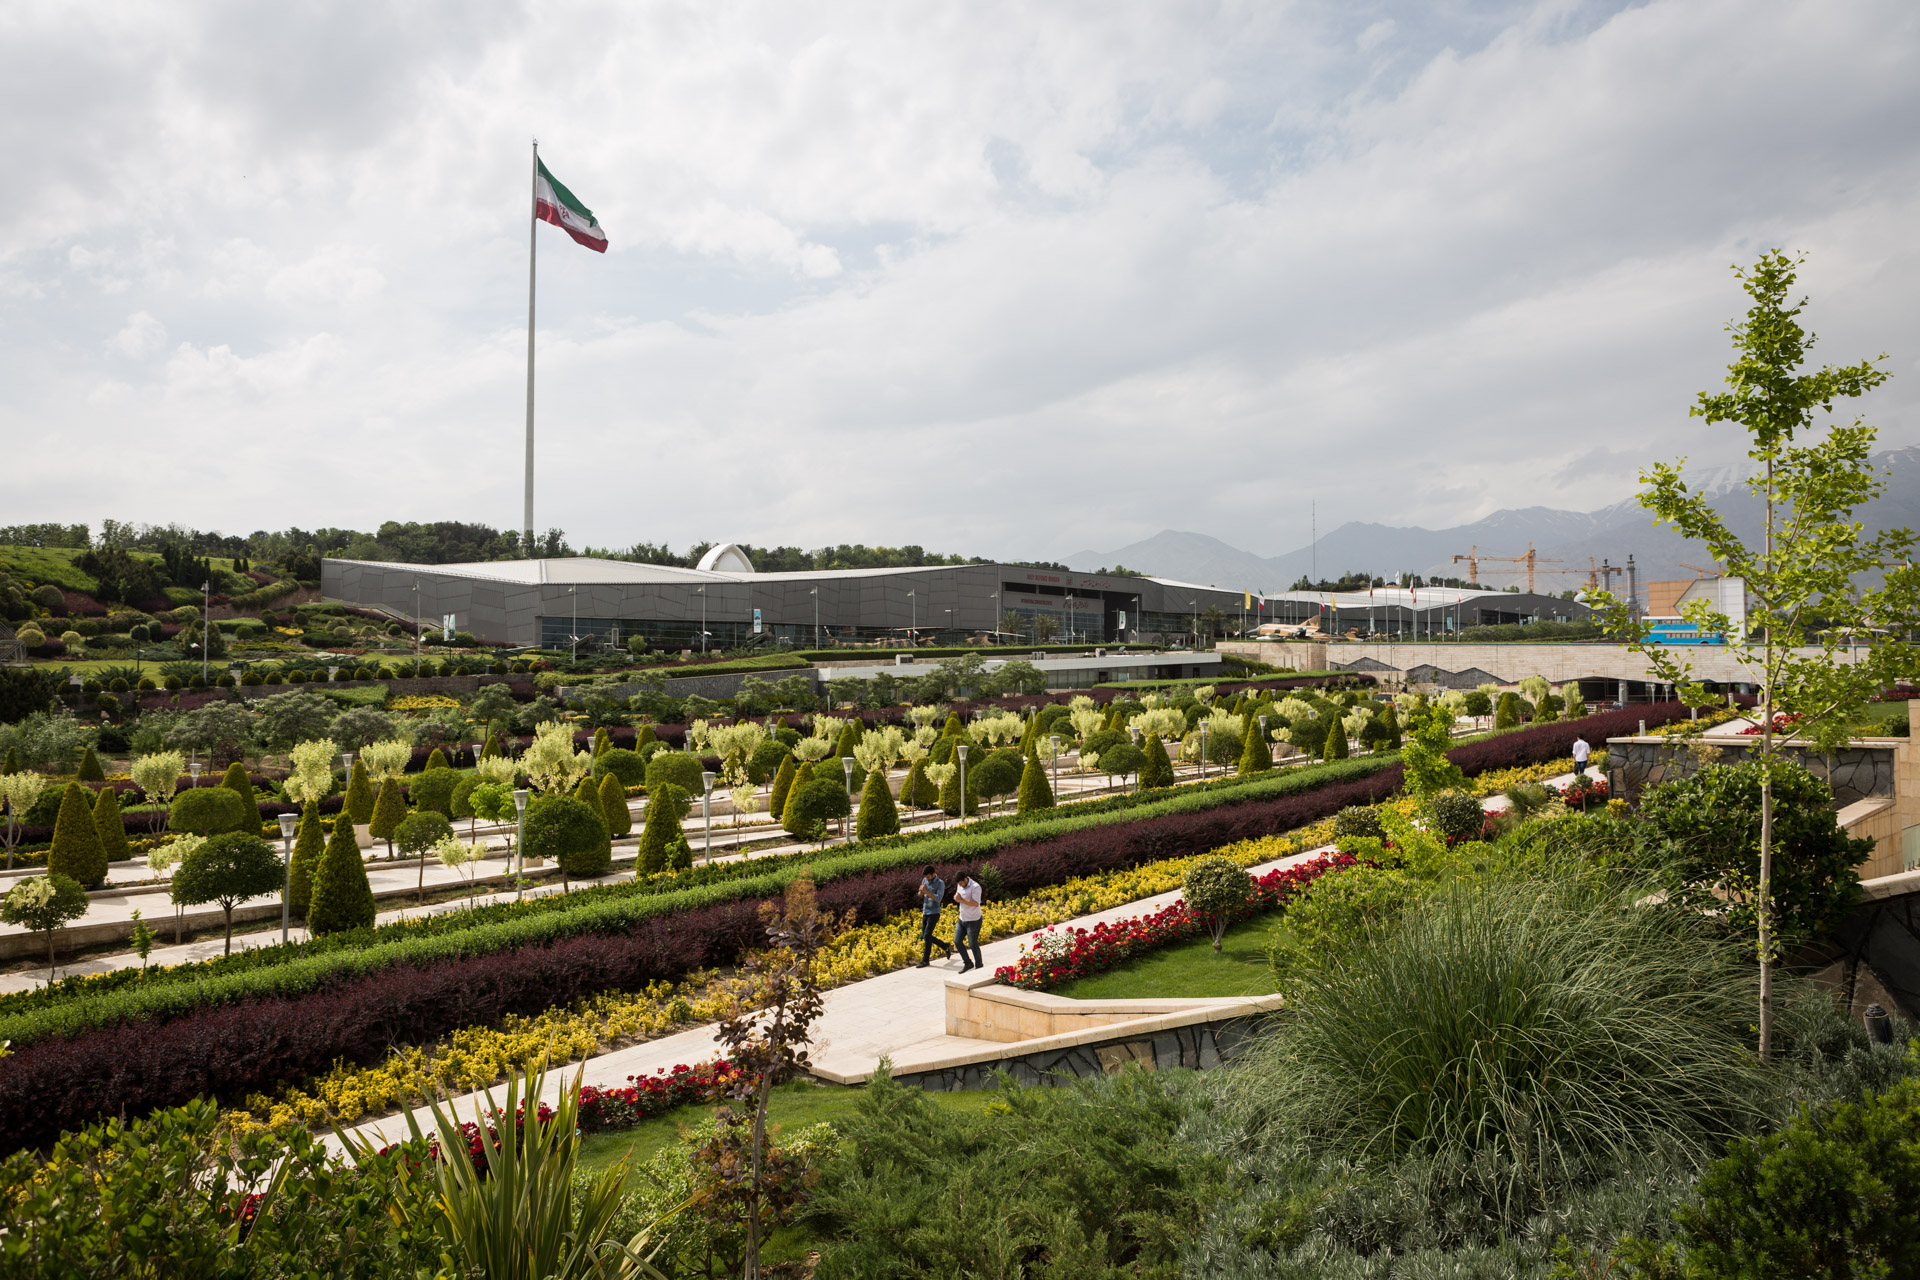 The museum grounds also features a public park, 21 hectare in size.